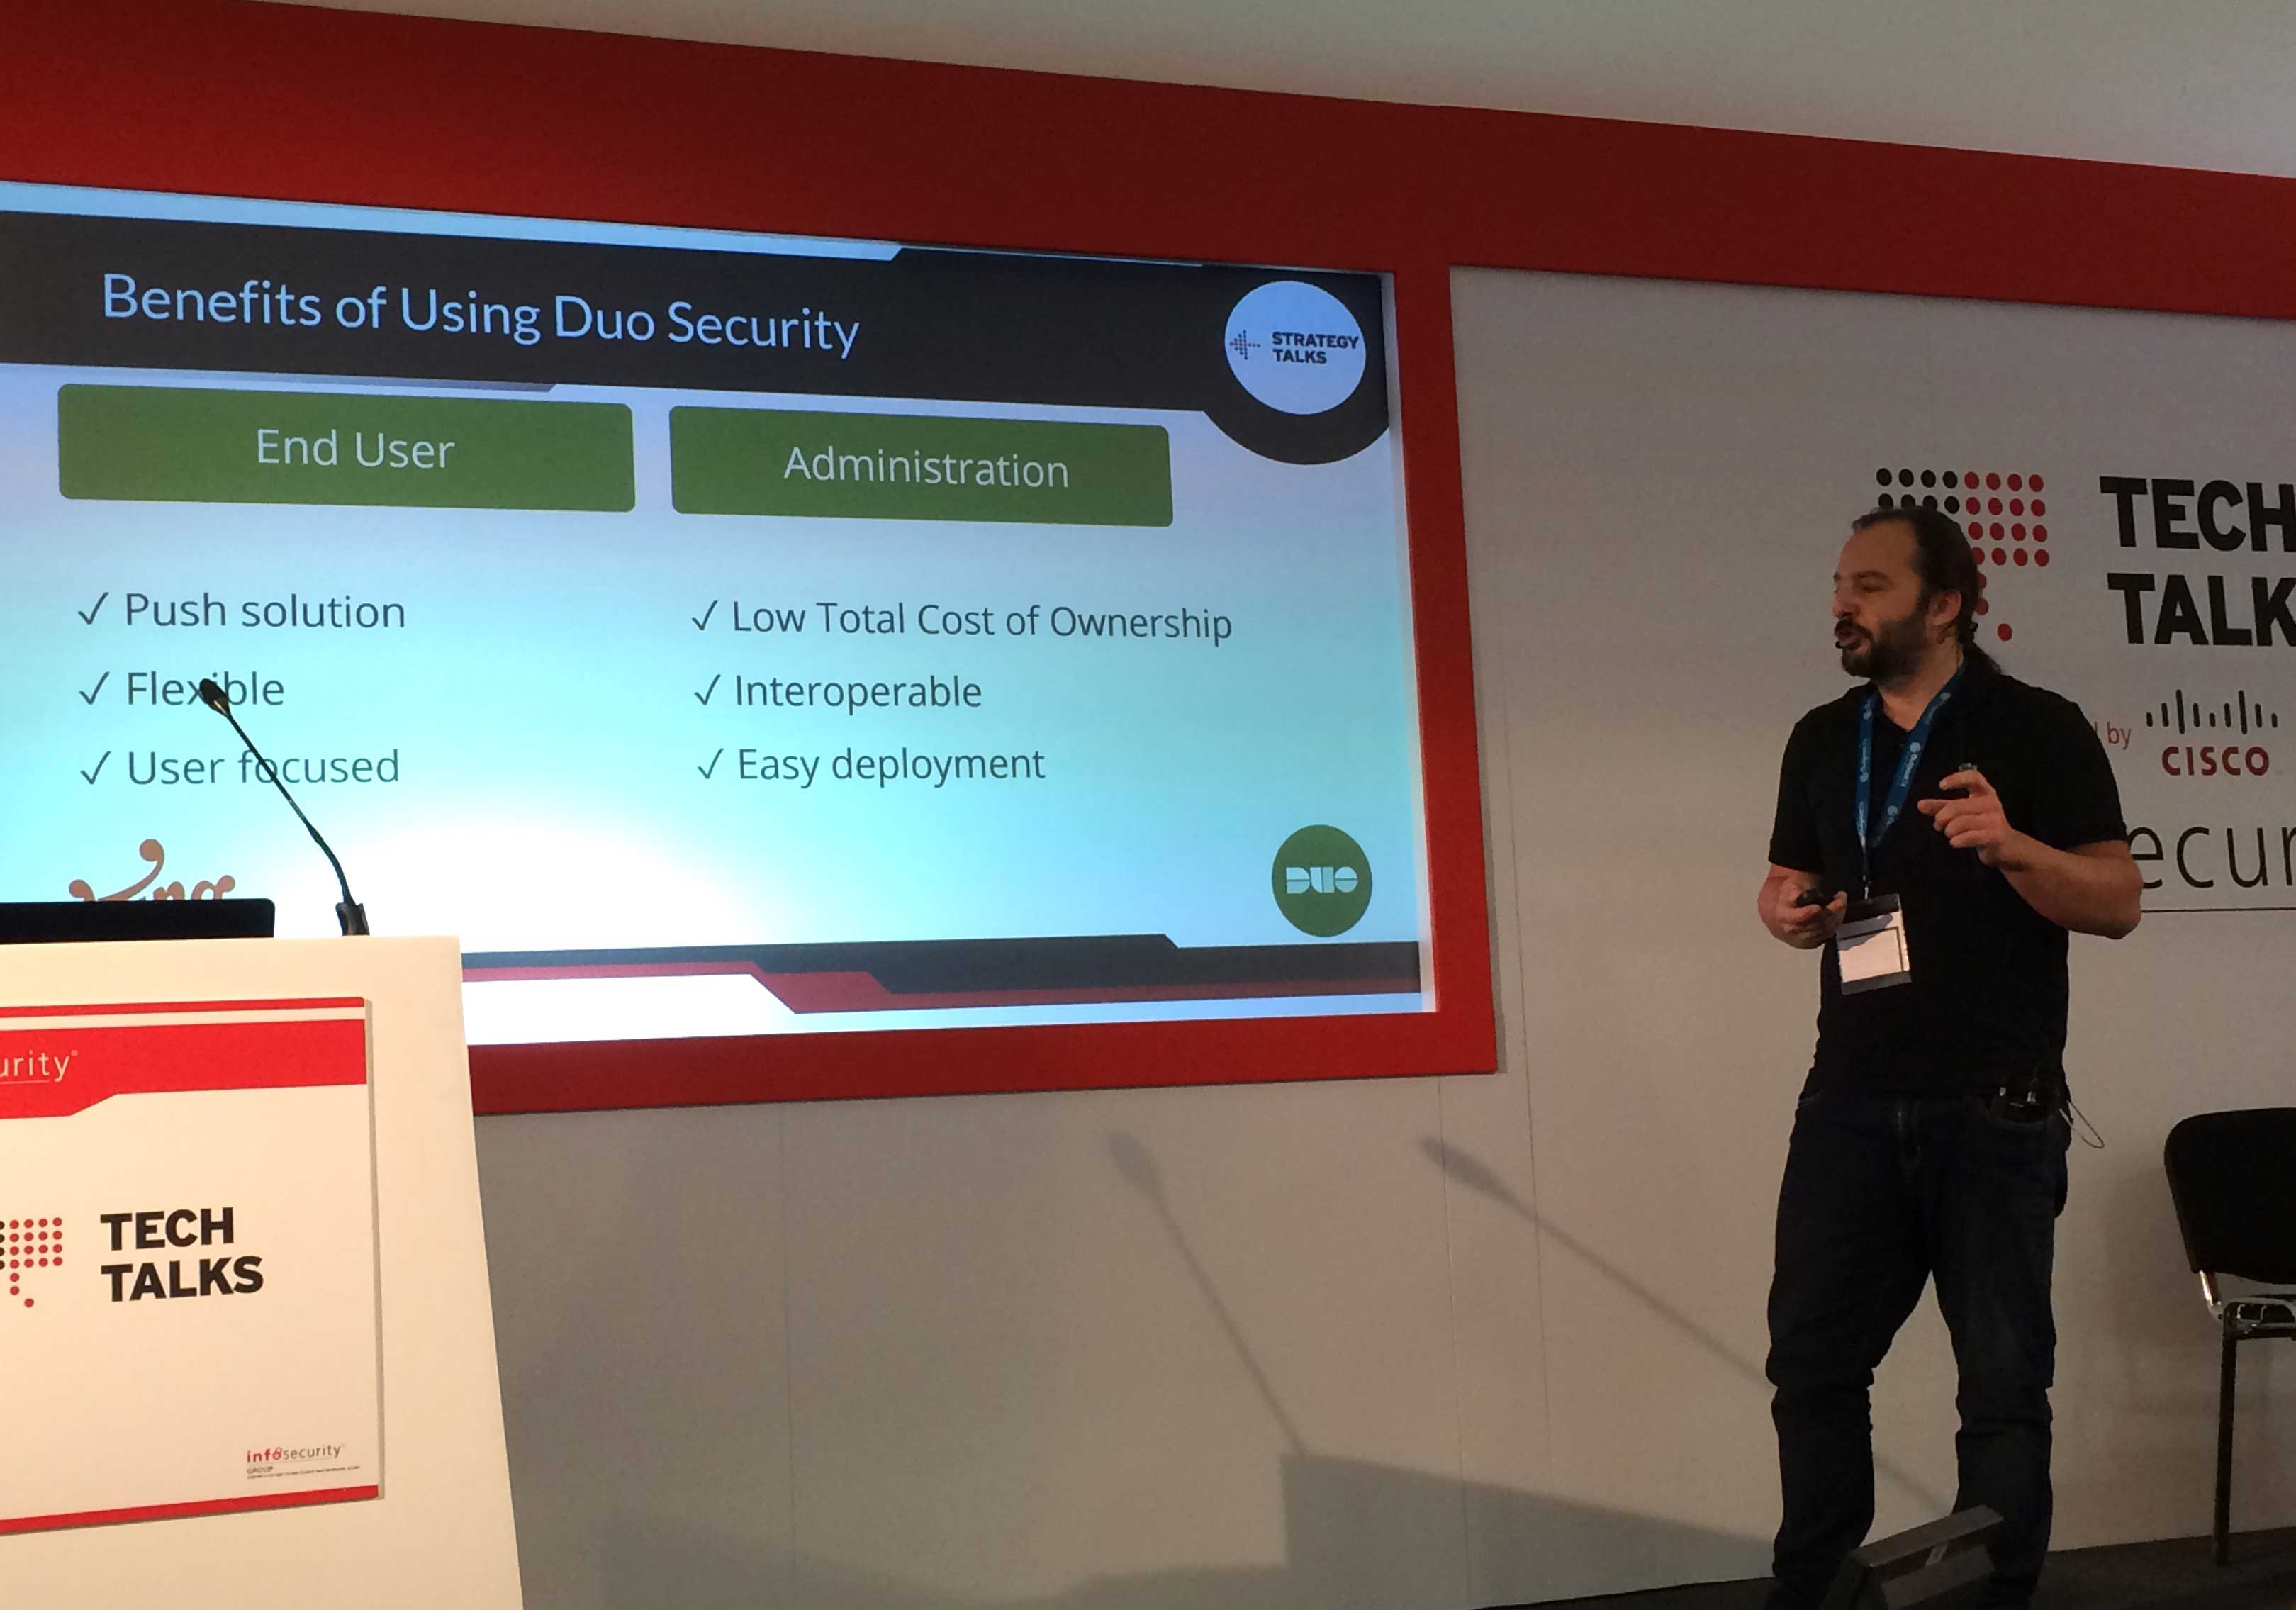 King.com Infosecurity Europe: Benefits of Duo